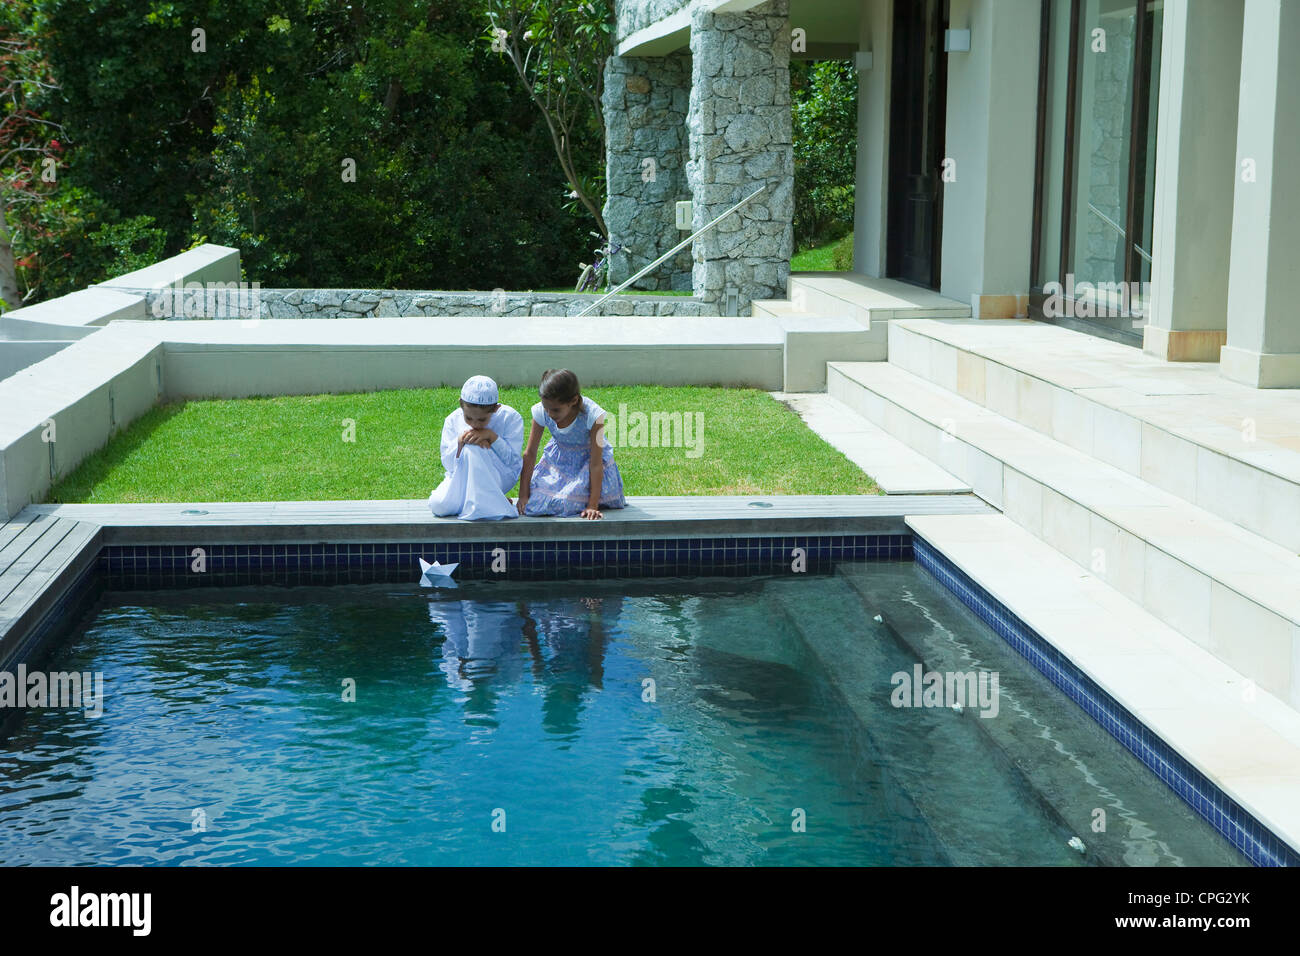 Boy and girl with paper boat by swimming pool. - Stock Image